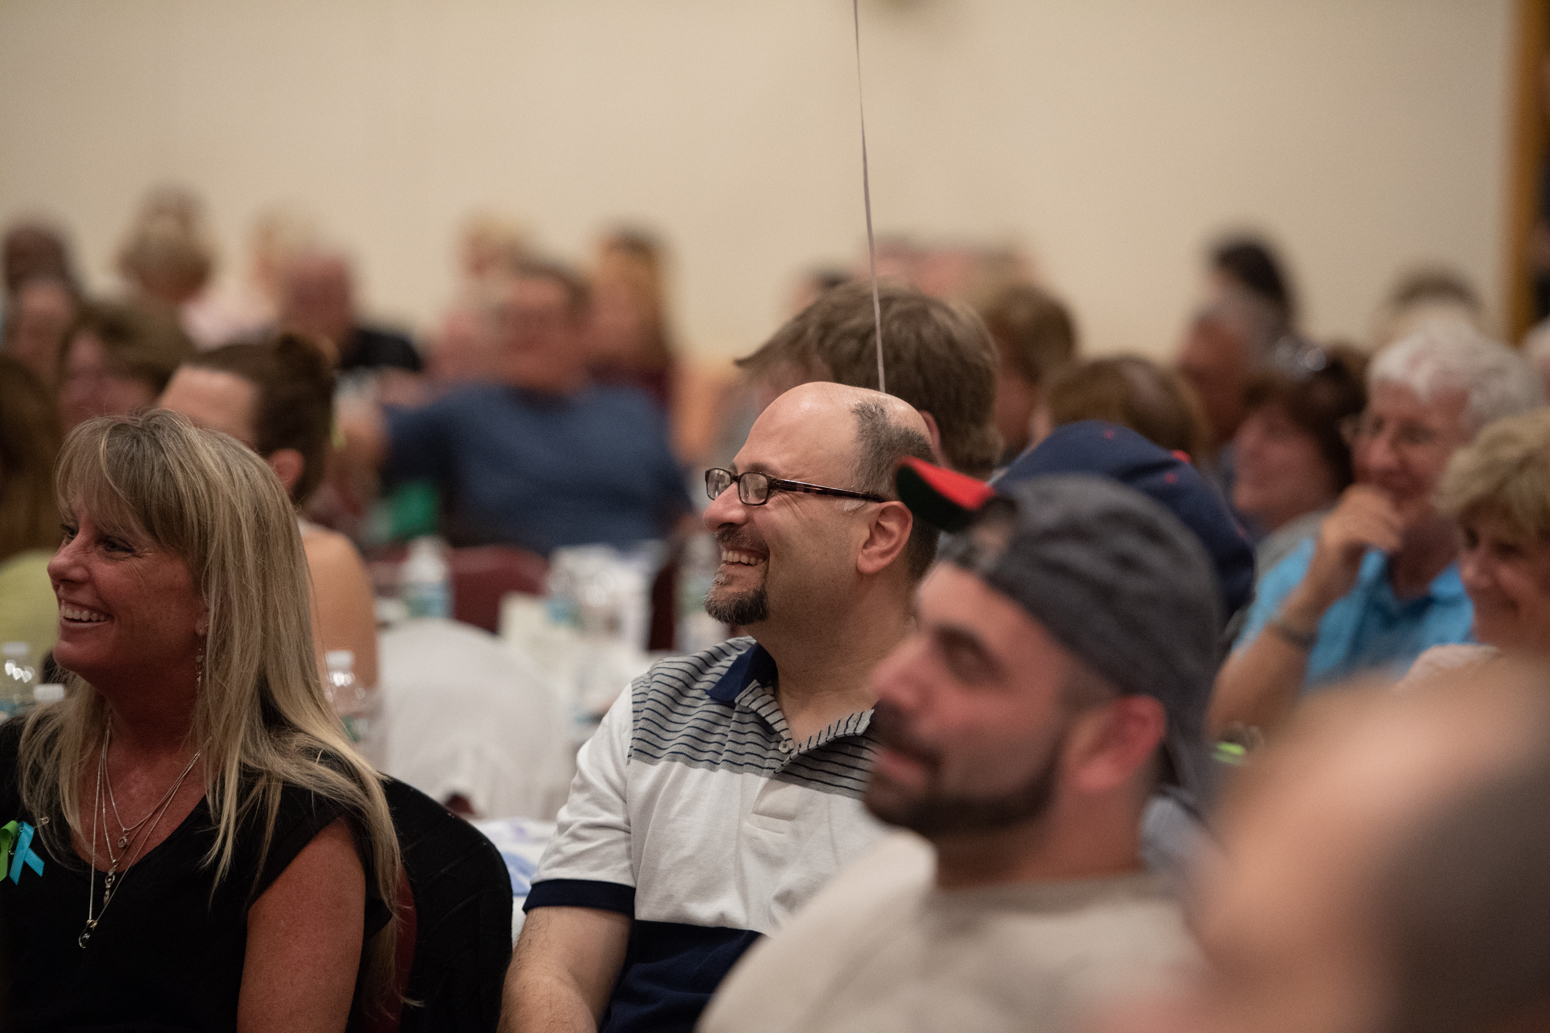 2nd-annual-togetherwecan-moa-comedy-night-fundraiser_40084801100_o.jpg